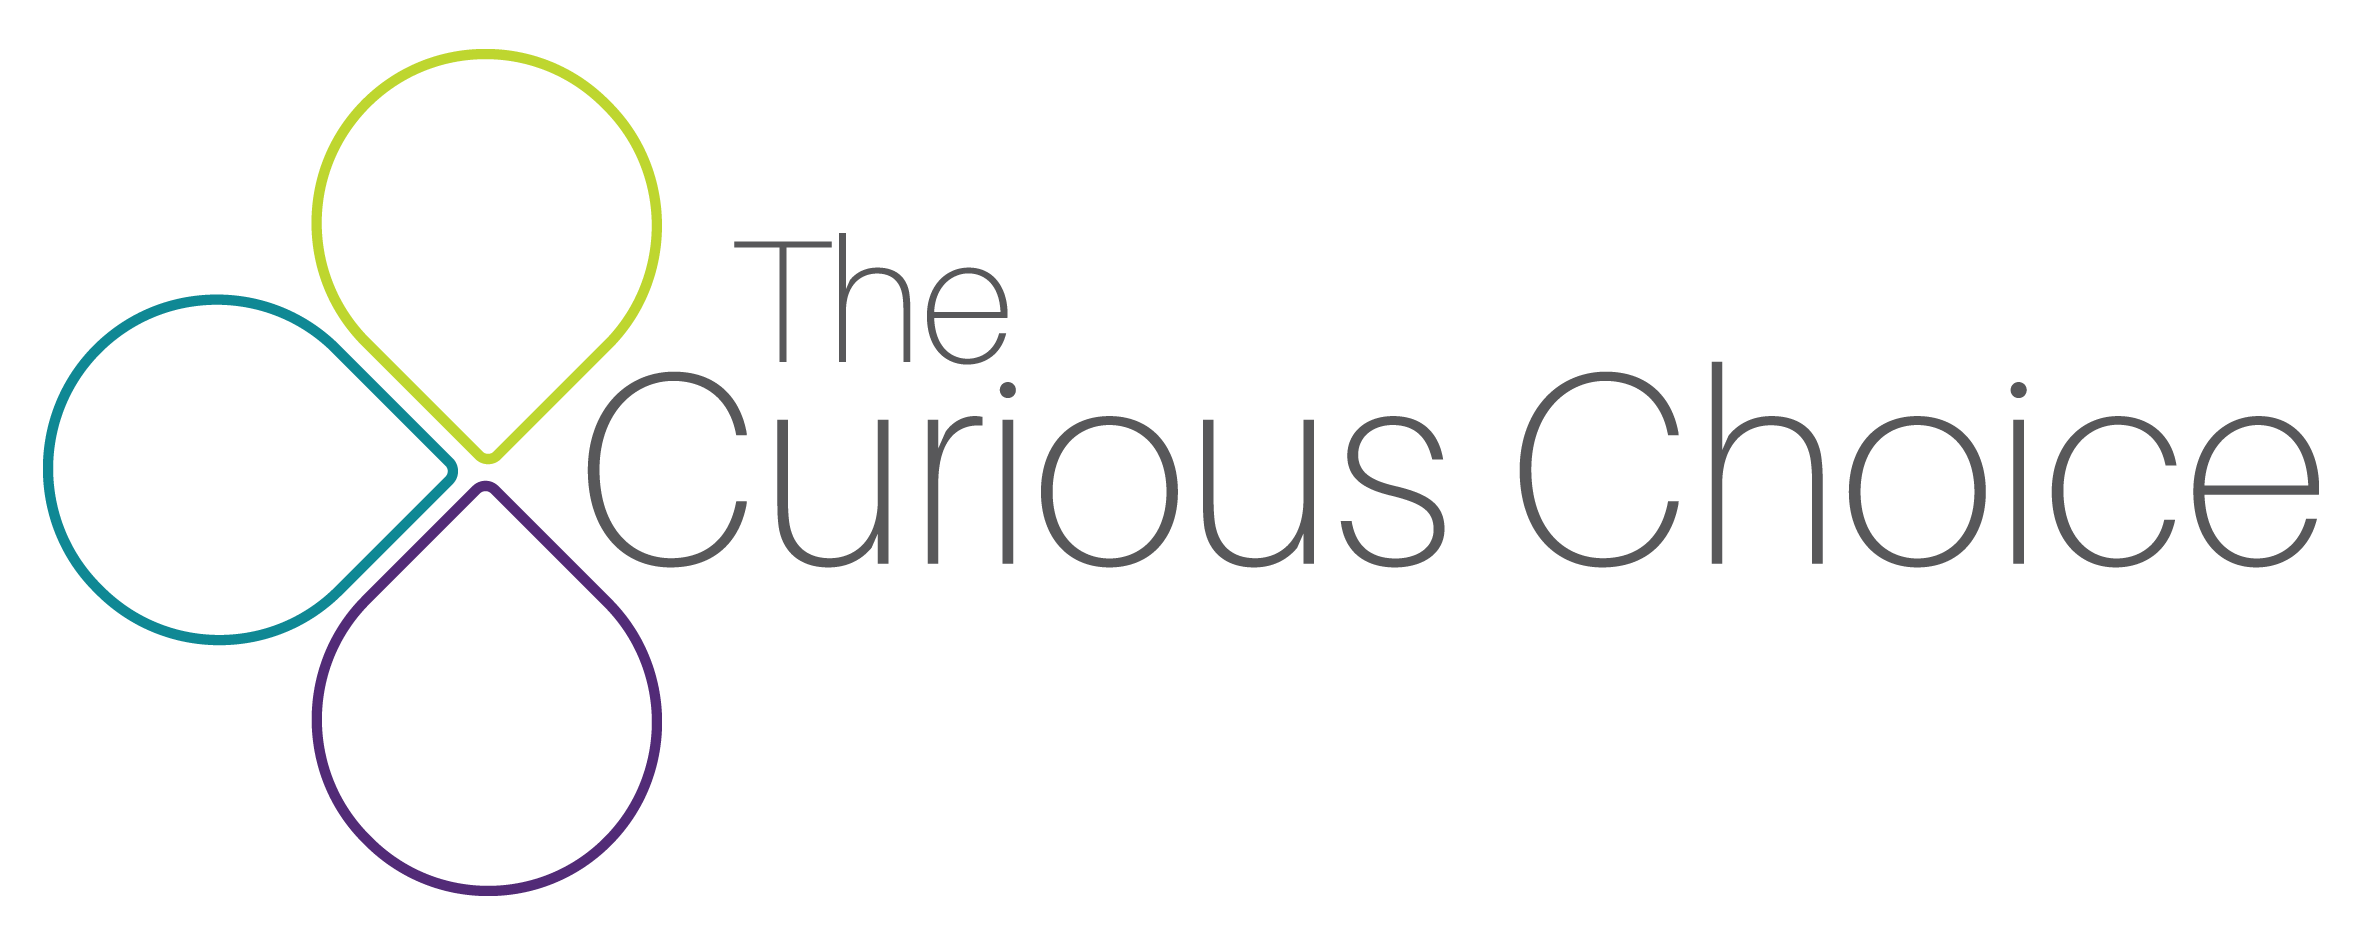 The Curious Choice lOGO